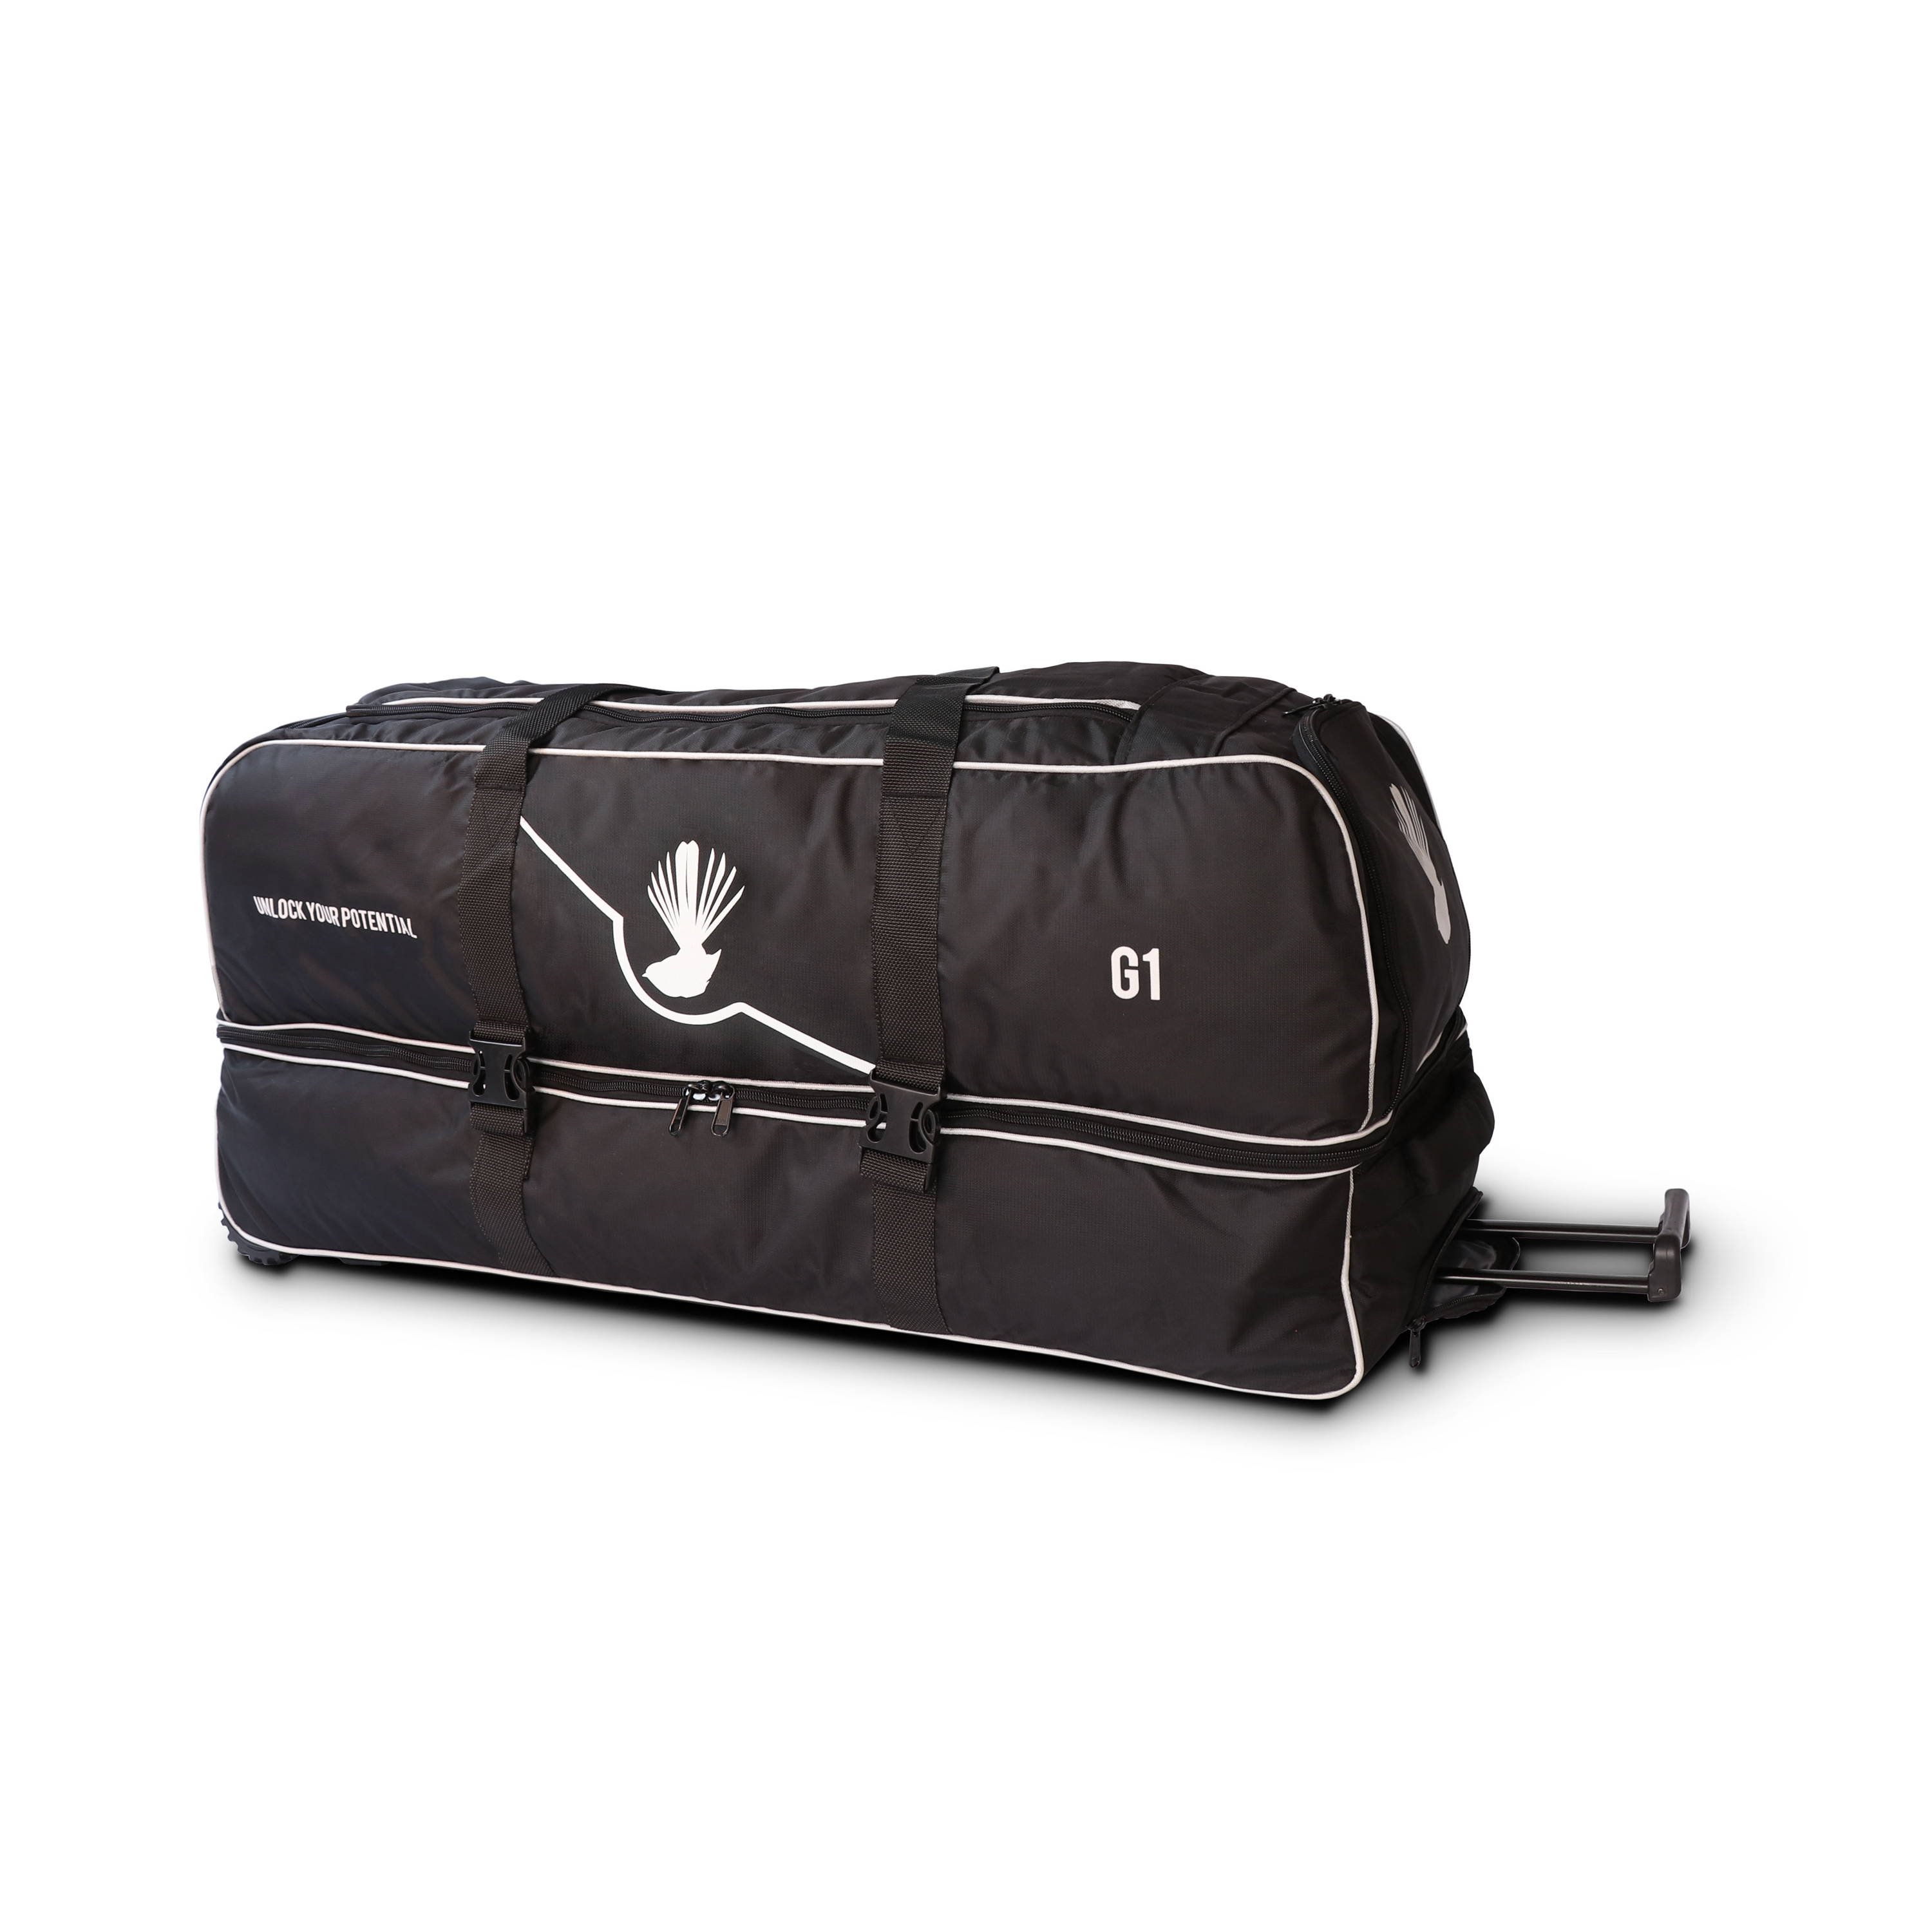 G1 Trolley Kit Bag - Fantail Cricket